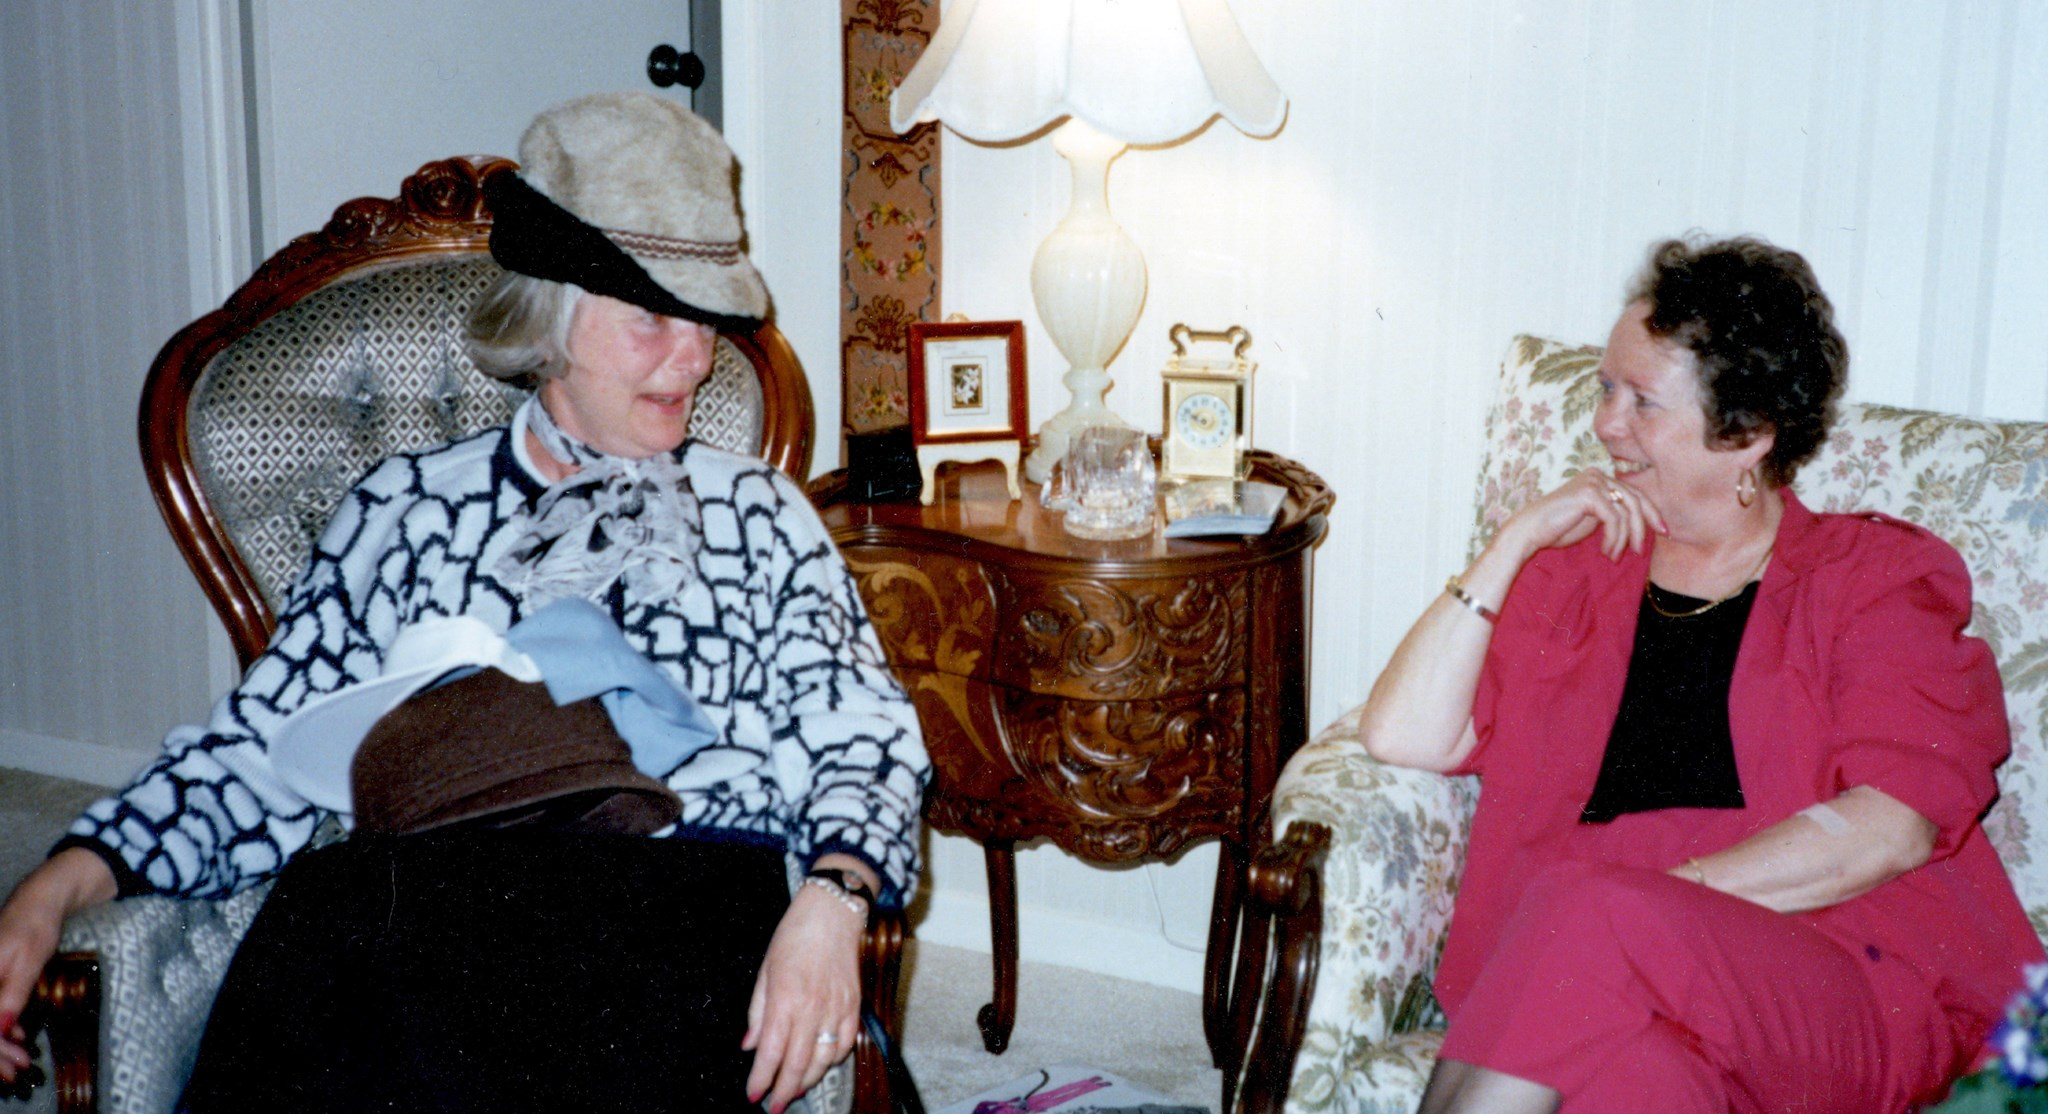 Jill and Jane Tilley, 1990, Thornhill, Canada